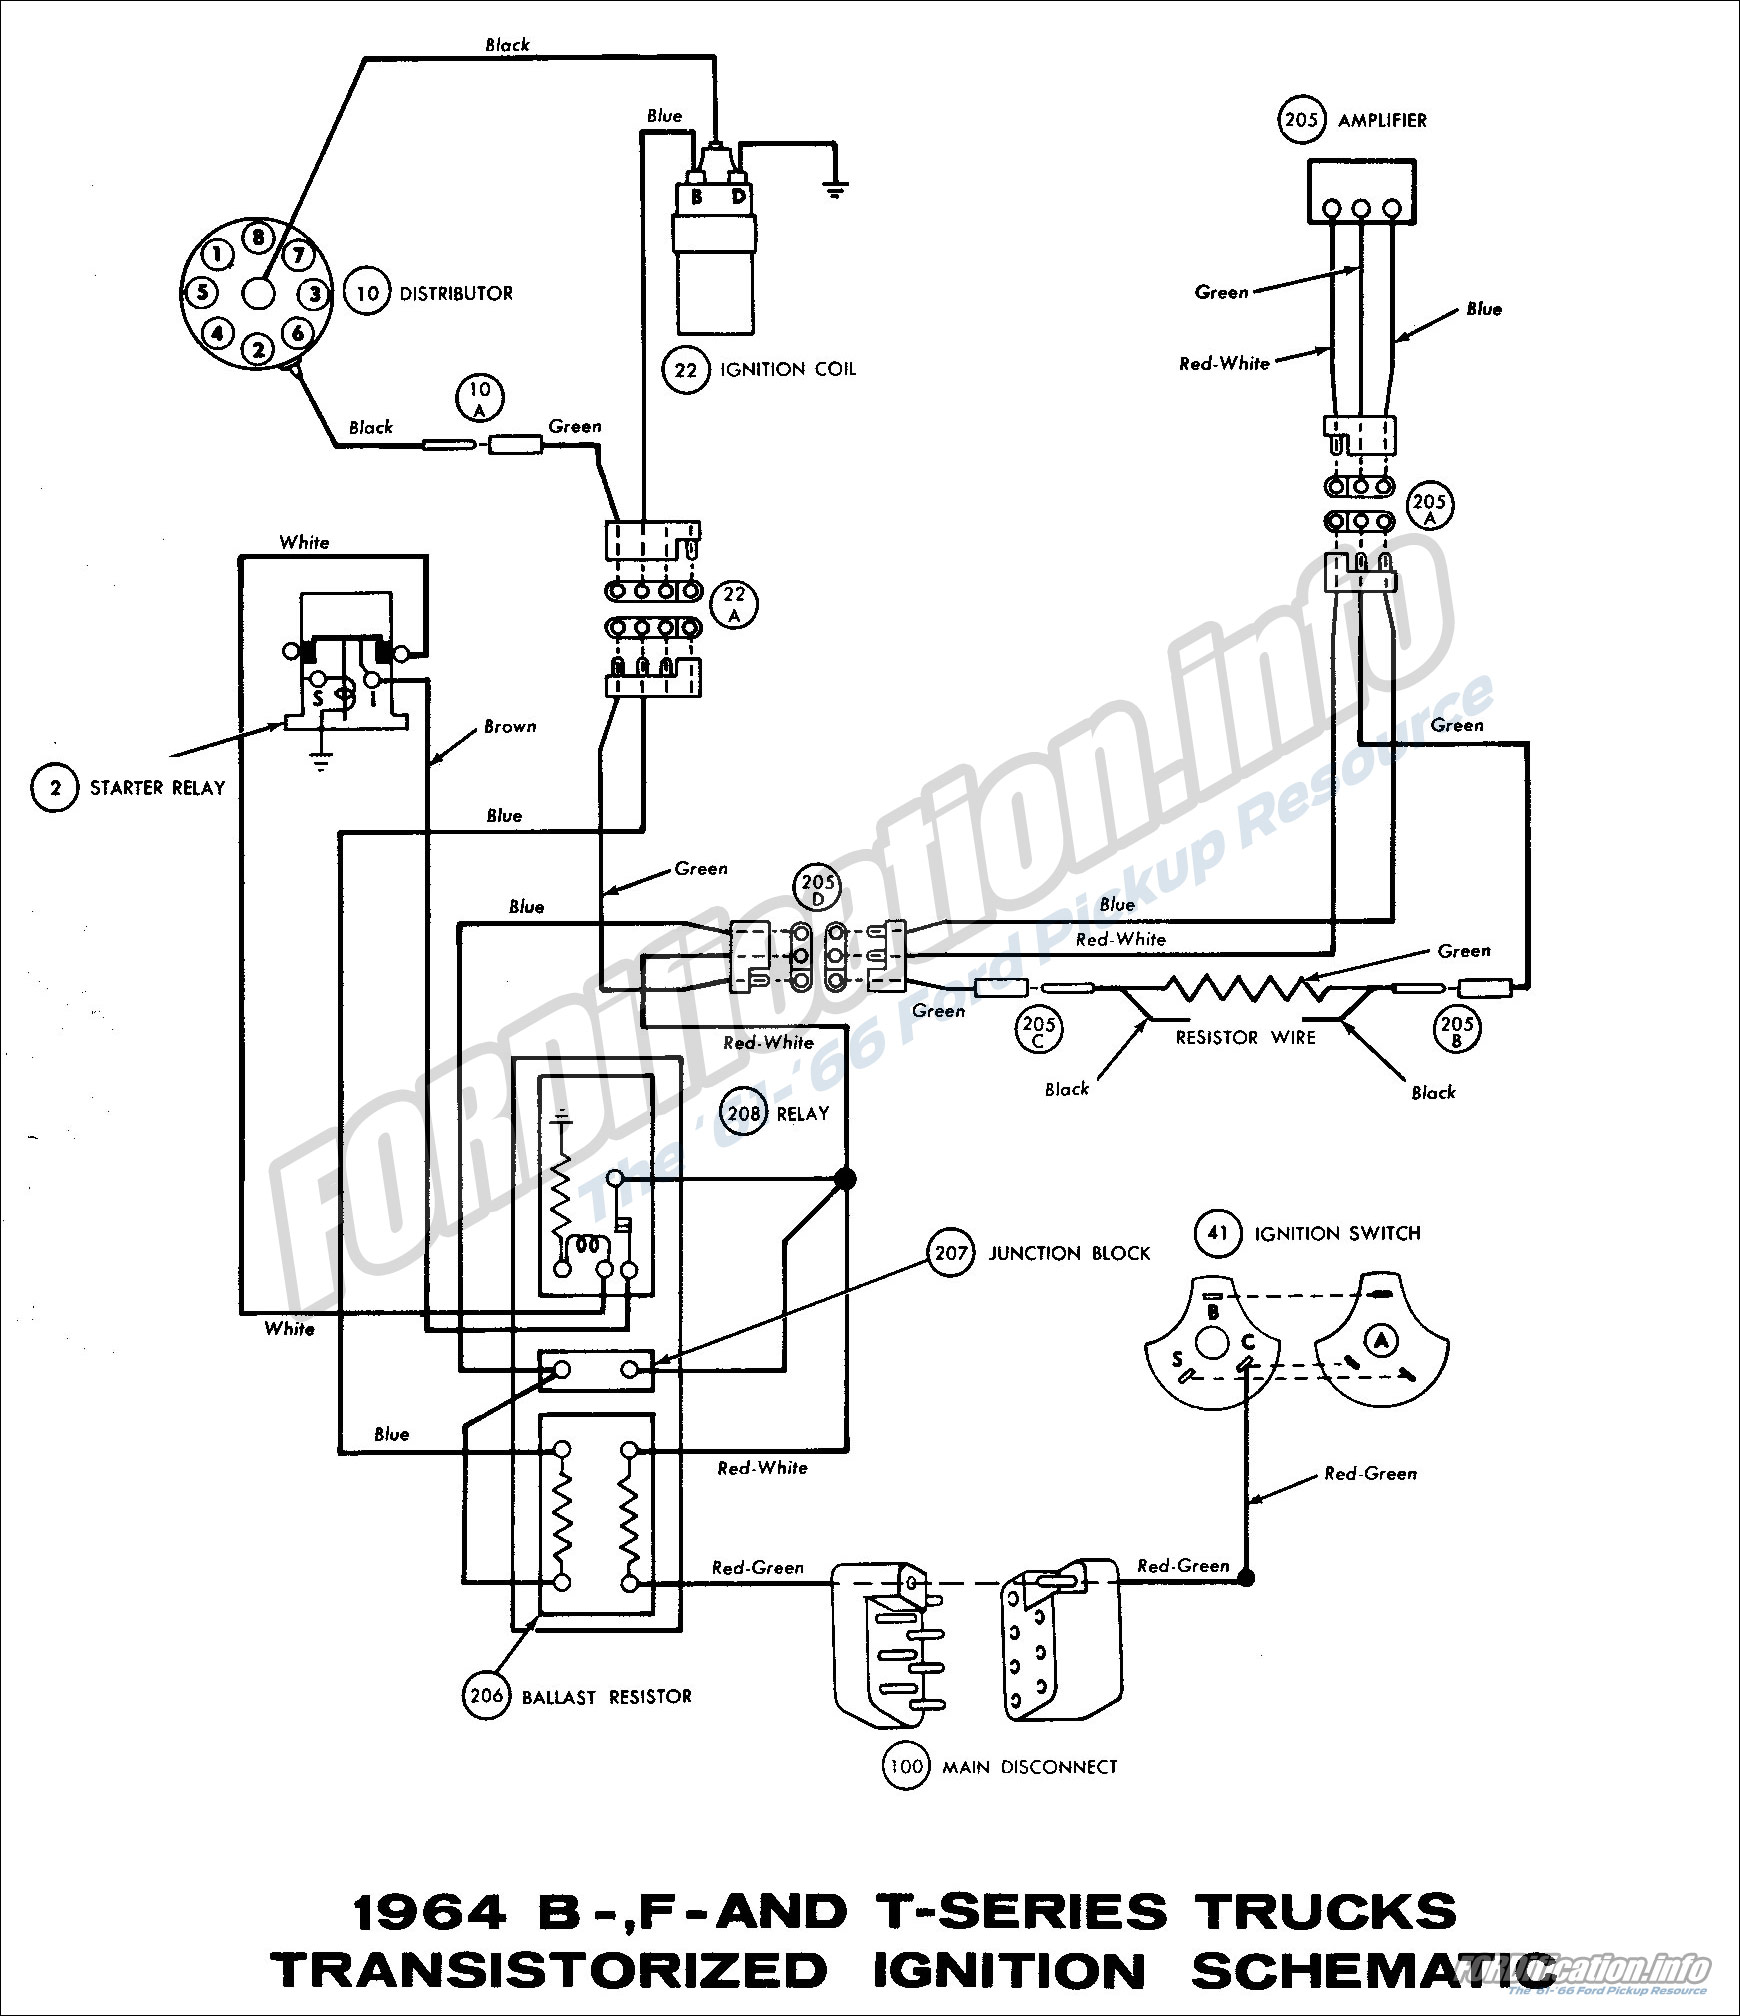 1941 ford wiring schematic 1941 ford coil wiring diagram | wiring library ford wiring schematic #12